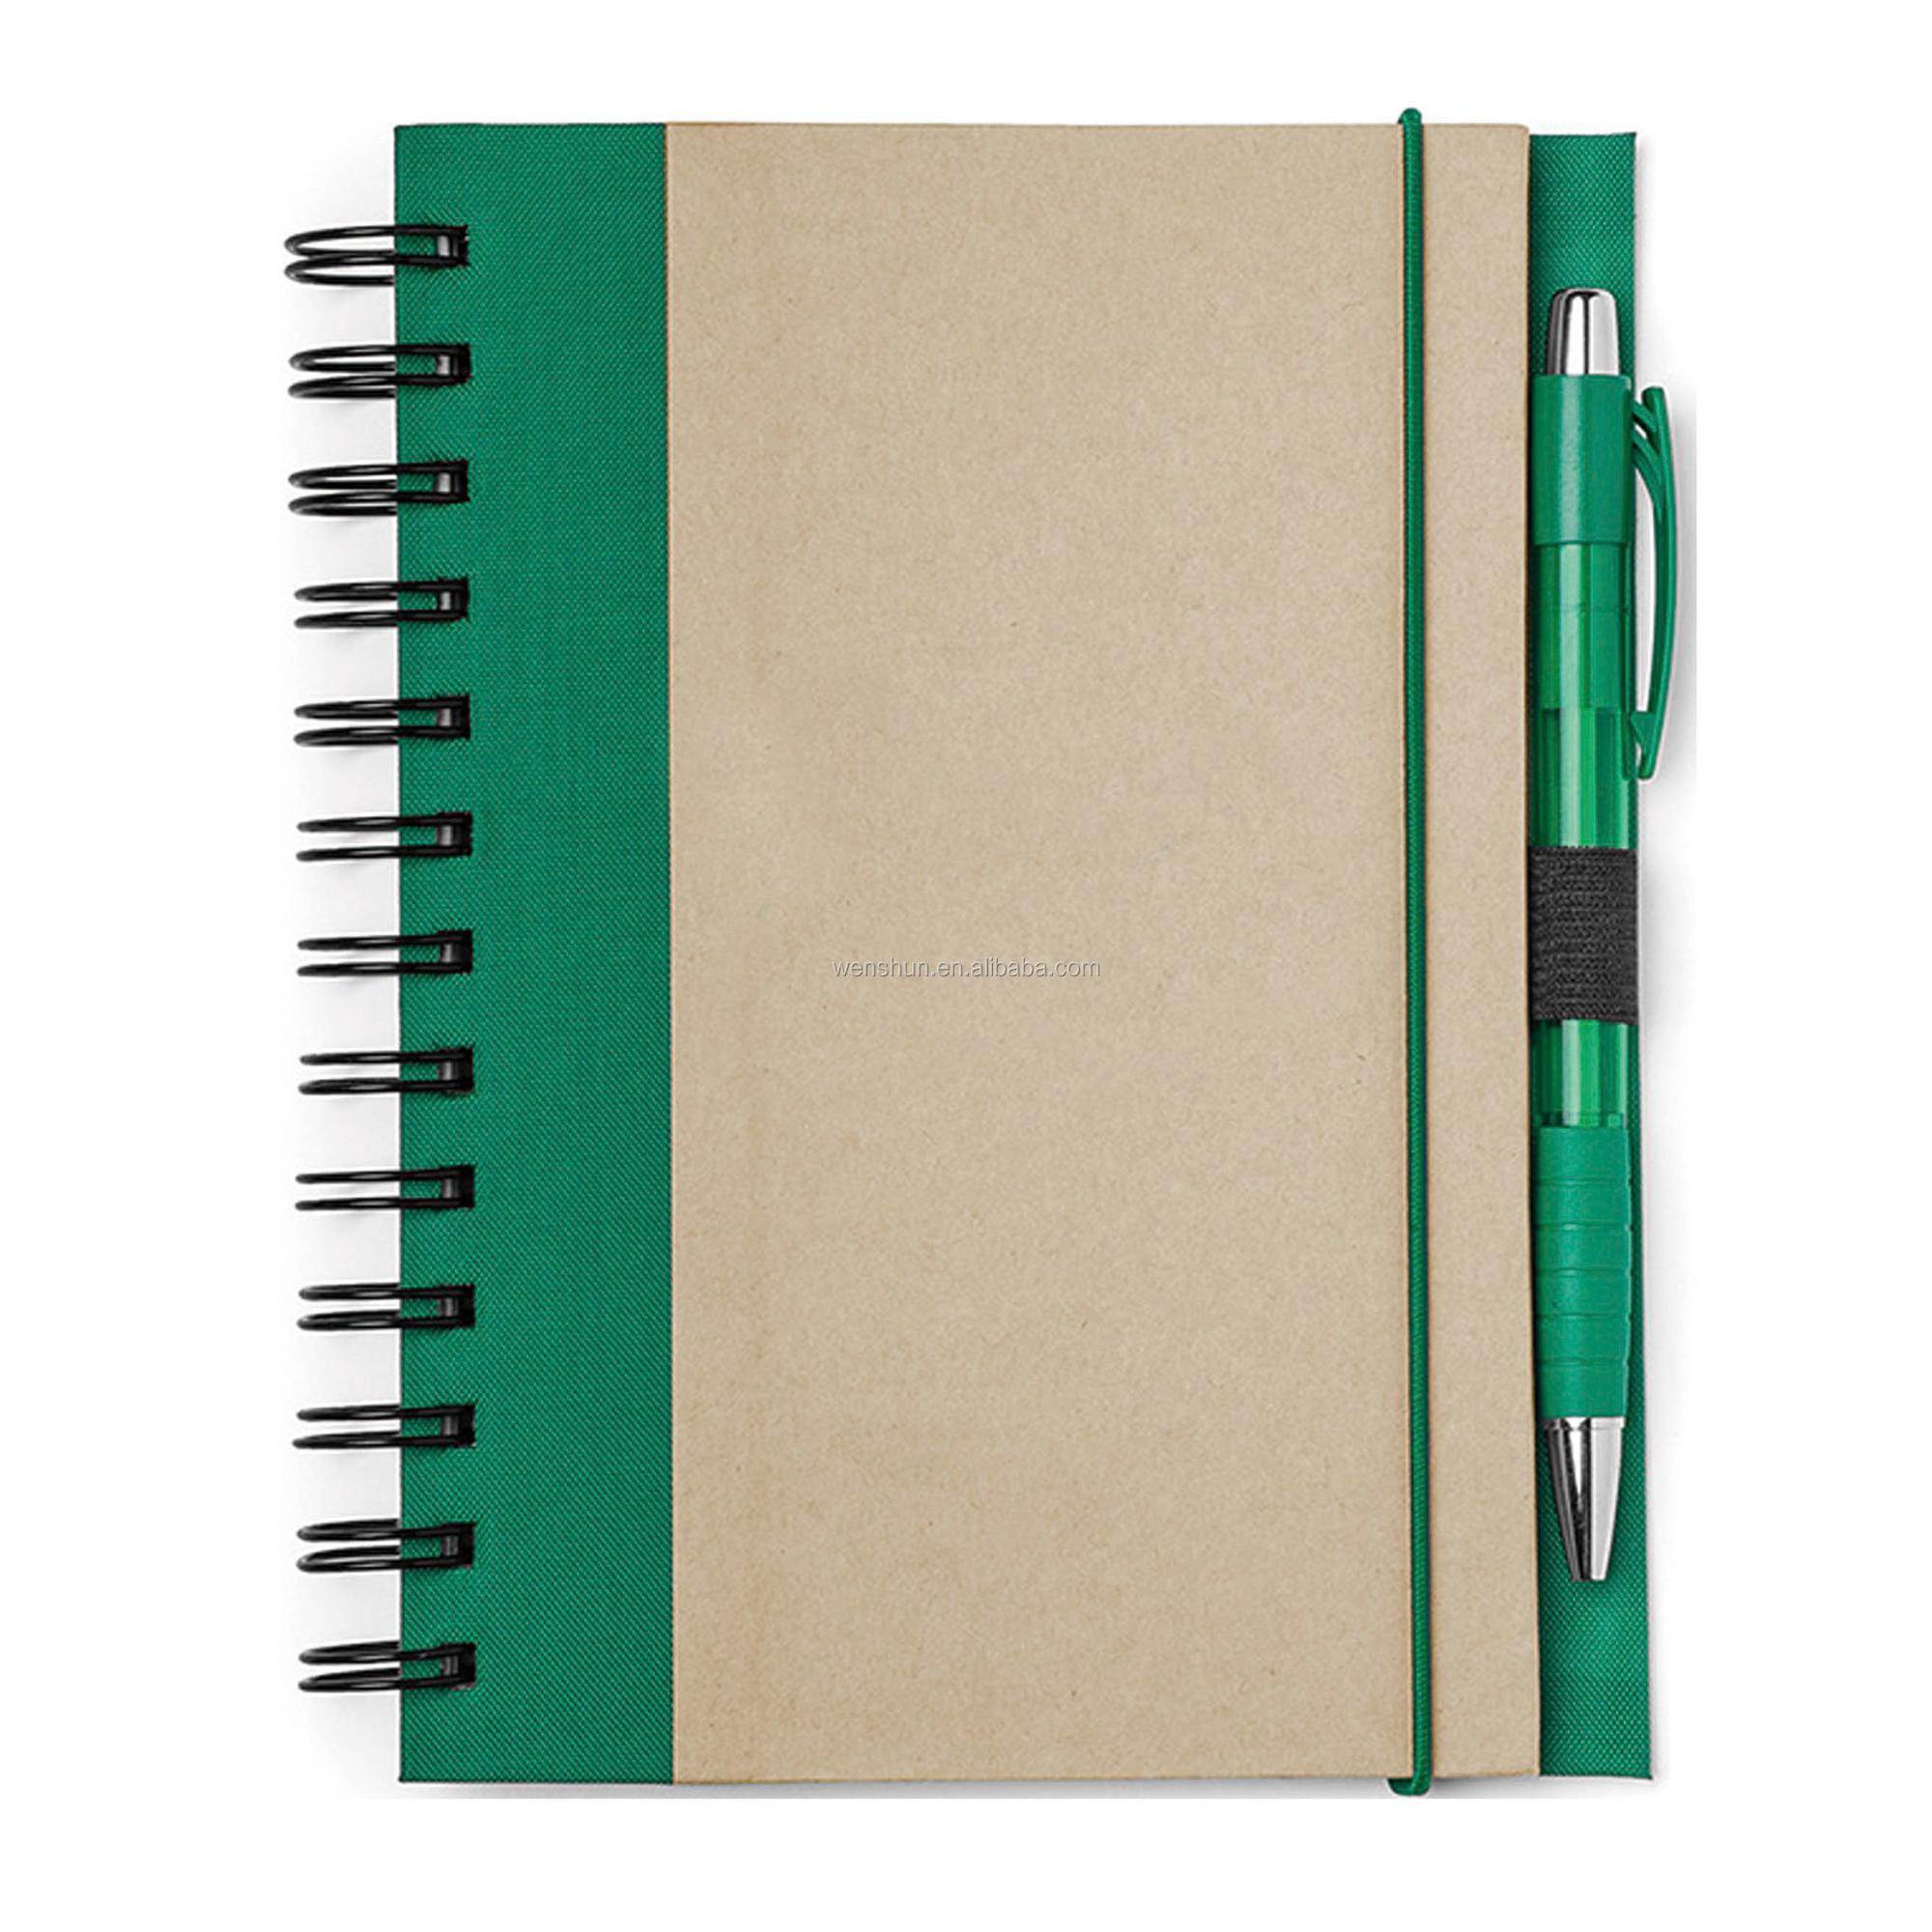 Eco Recycled Samples of Notebook Cover Designs Synthetic Paper Notebook